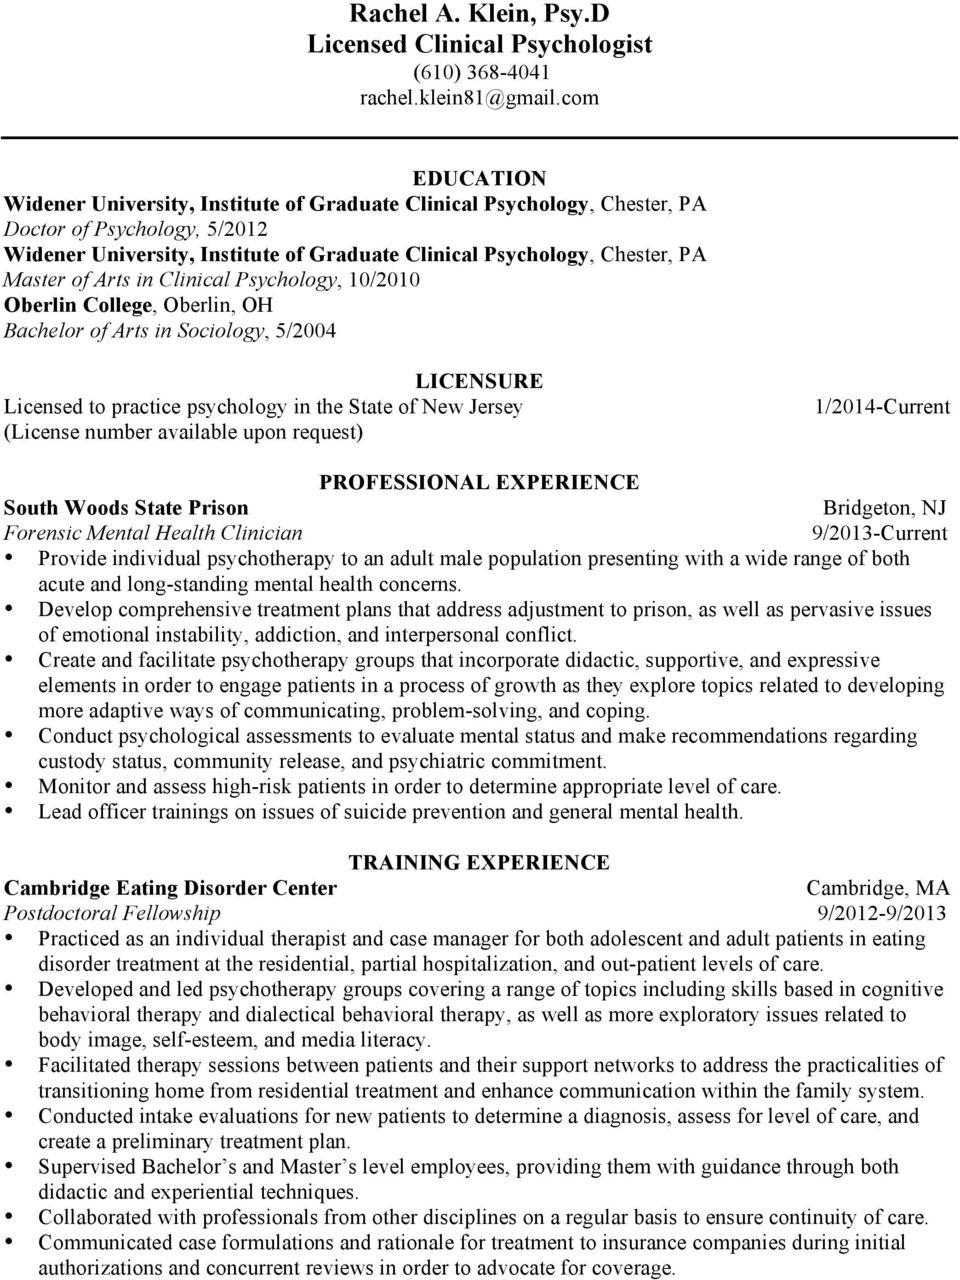 Psychology, 10/2010 Oberlin College, Oberlin, OH Bachelor of Arts in Sociology, 5/2004 LICENSURE Licensed to practice psychology in the State of New Jersey (License number available upon request)